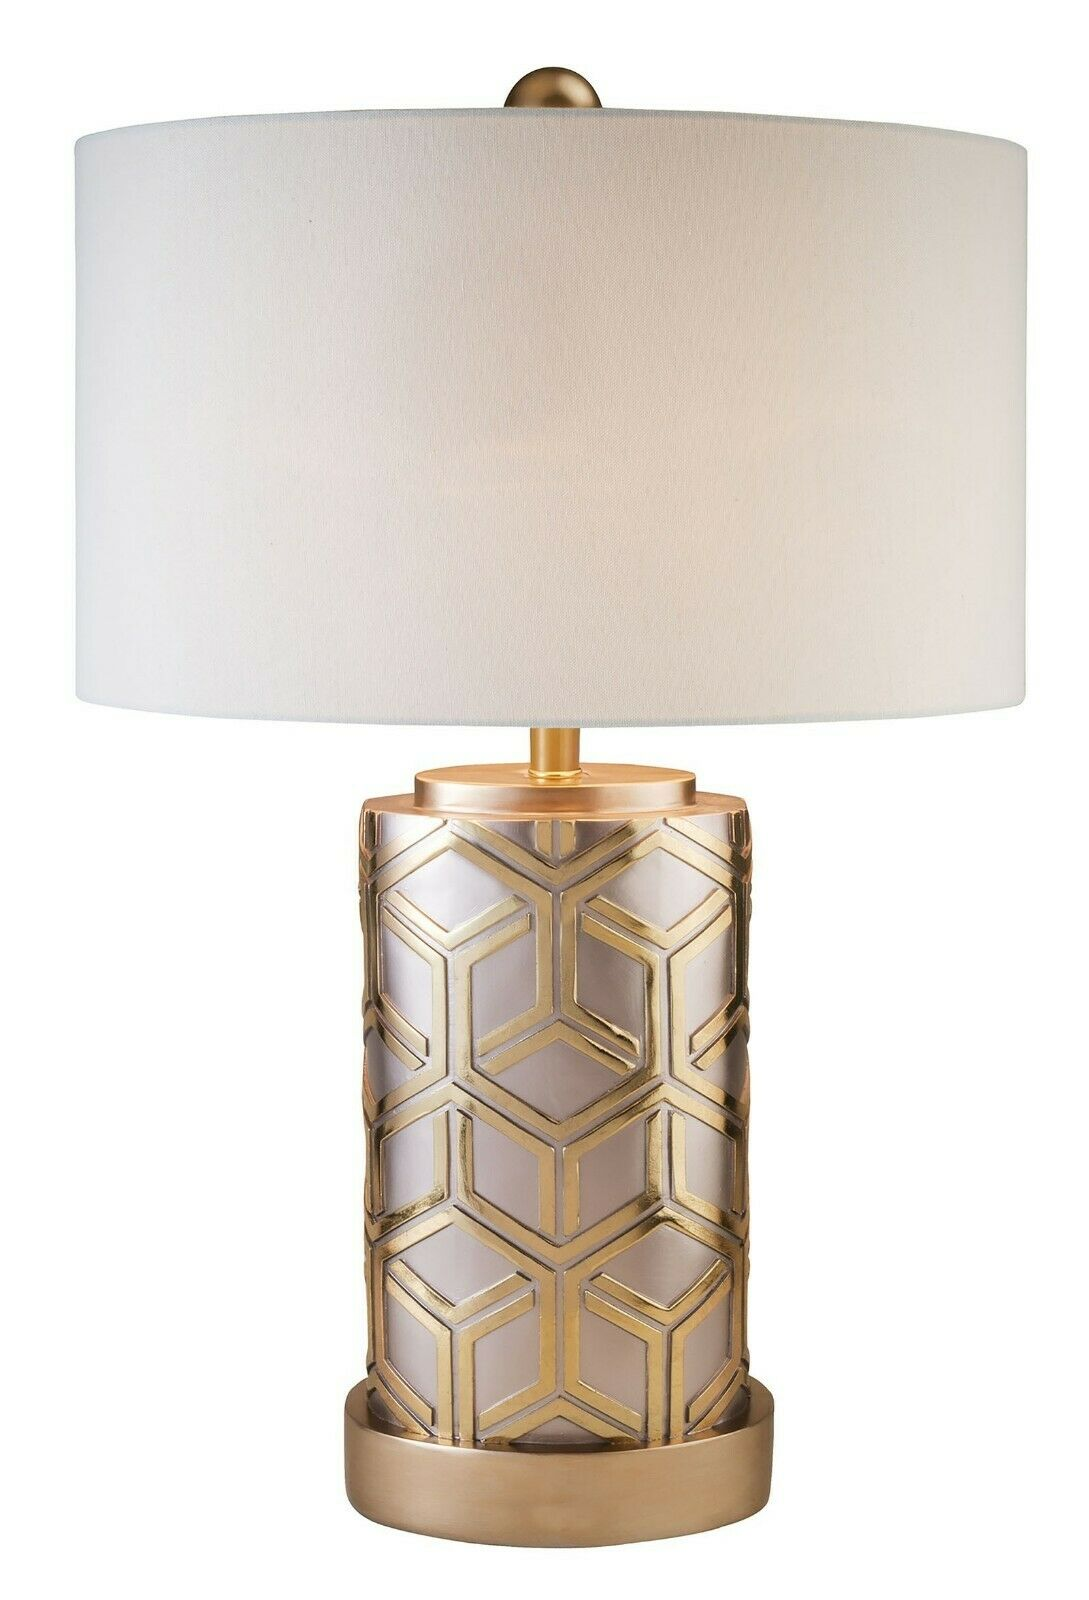 Gold Geometric Lines Table Lamp Bedroom Home Decor